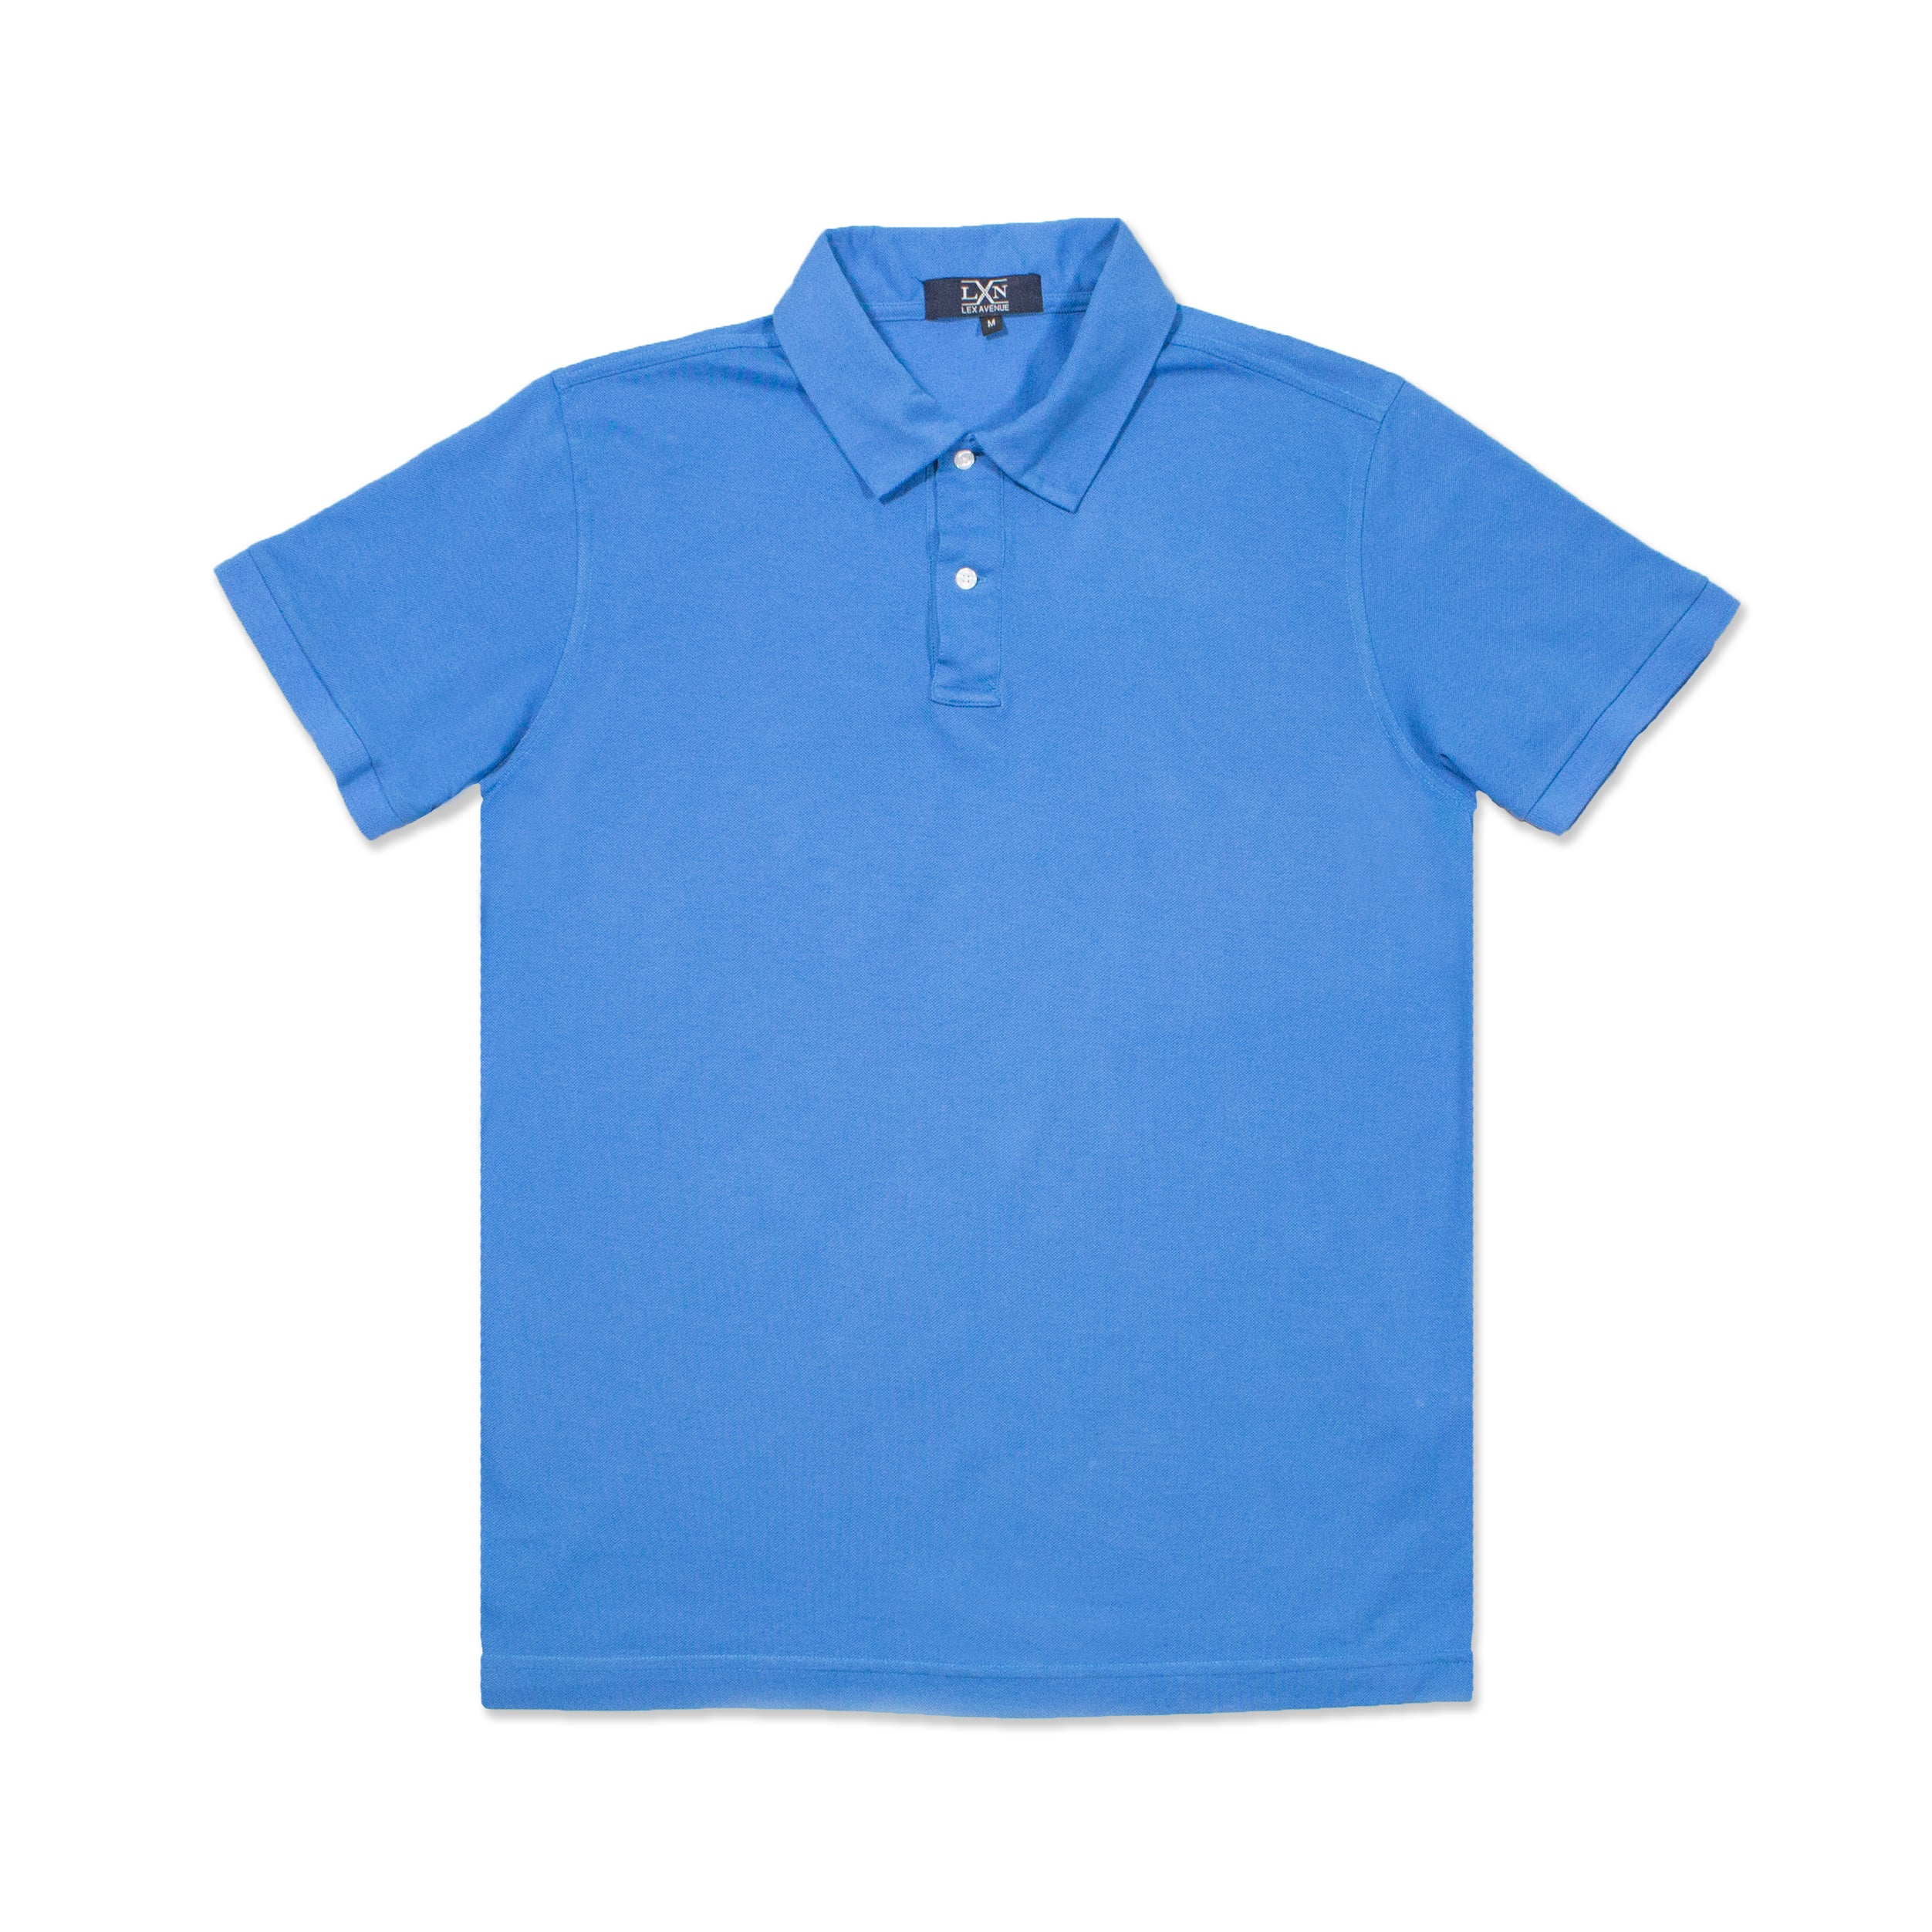 polo shirt (Blue)